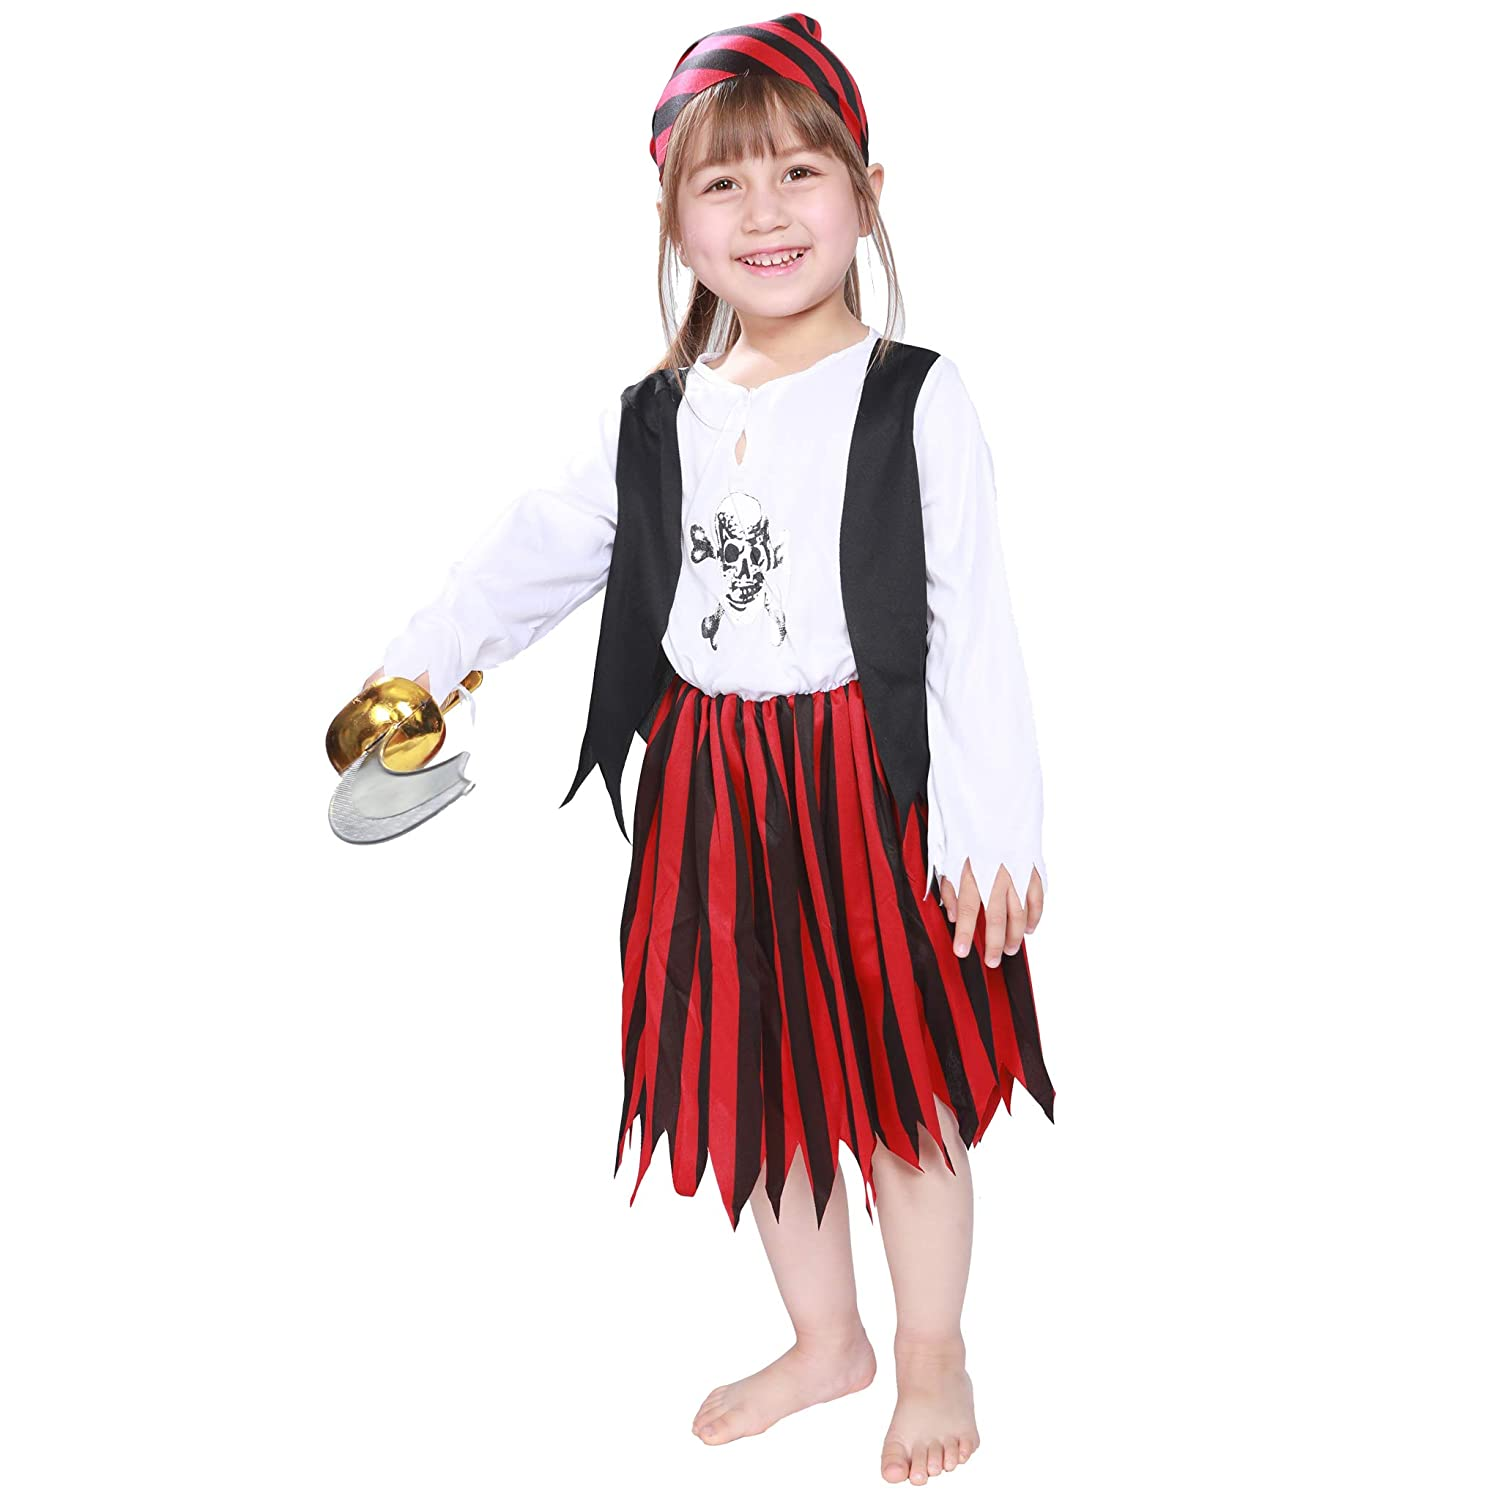 Halloween Costumes For Kidsboys.Eraspooky Children S Pirate Costume Kids Halloween Girls Costumes Boys Dress Up Pirate Suit Funny Cosplay Party